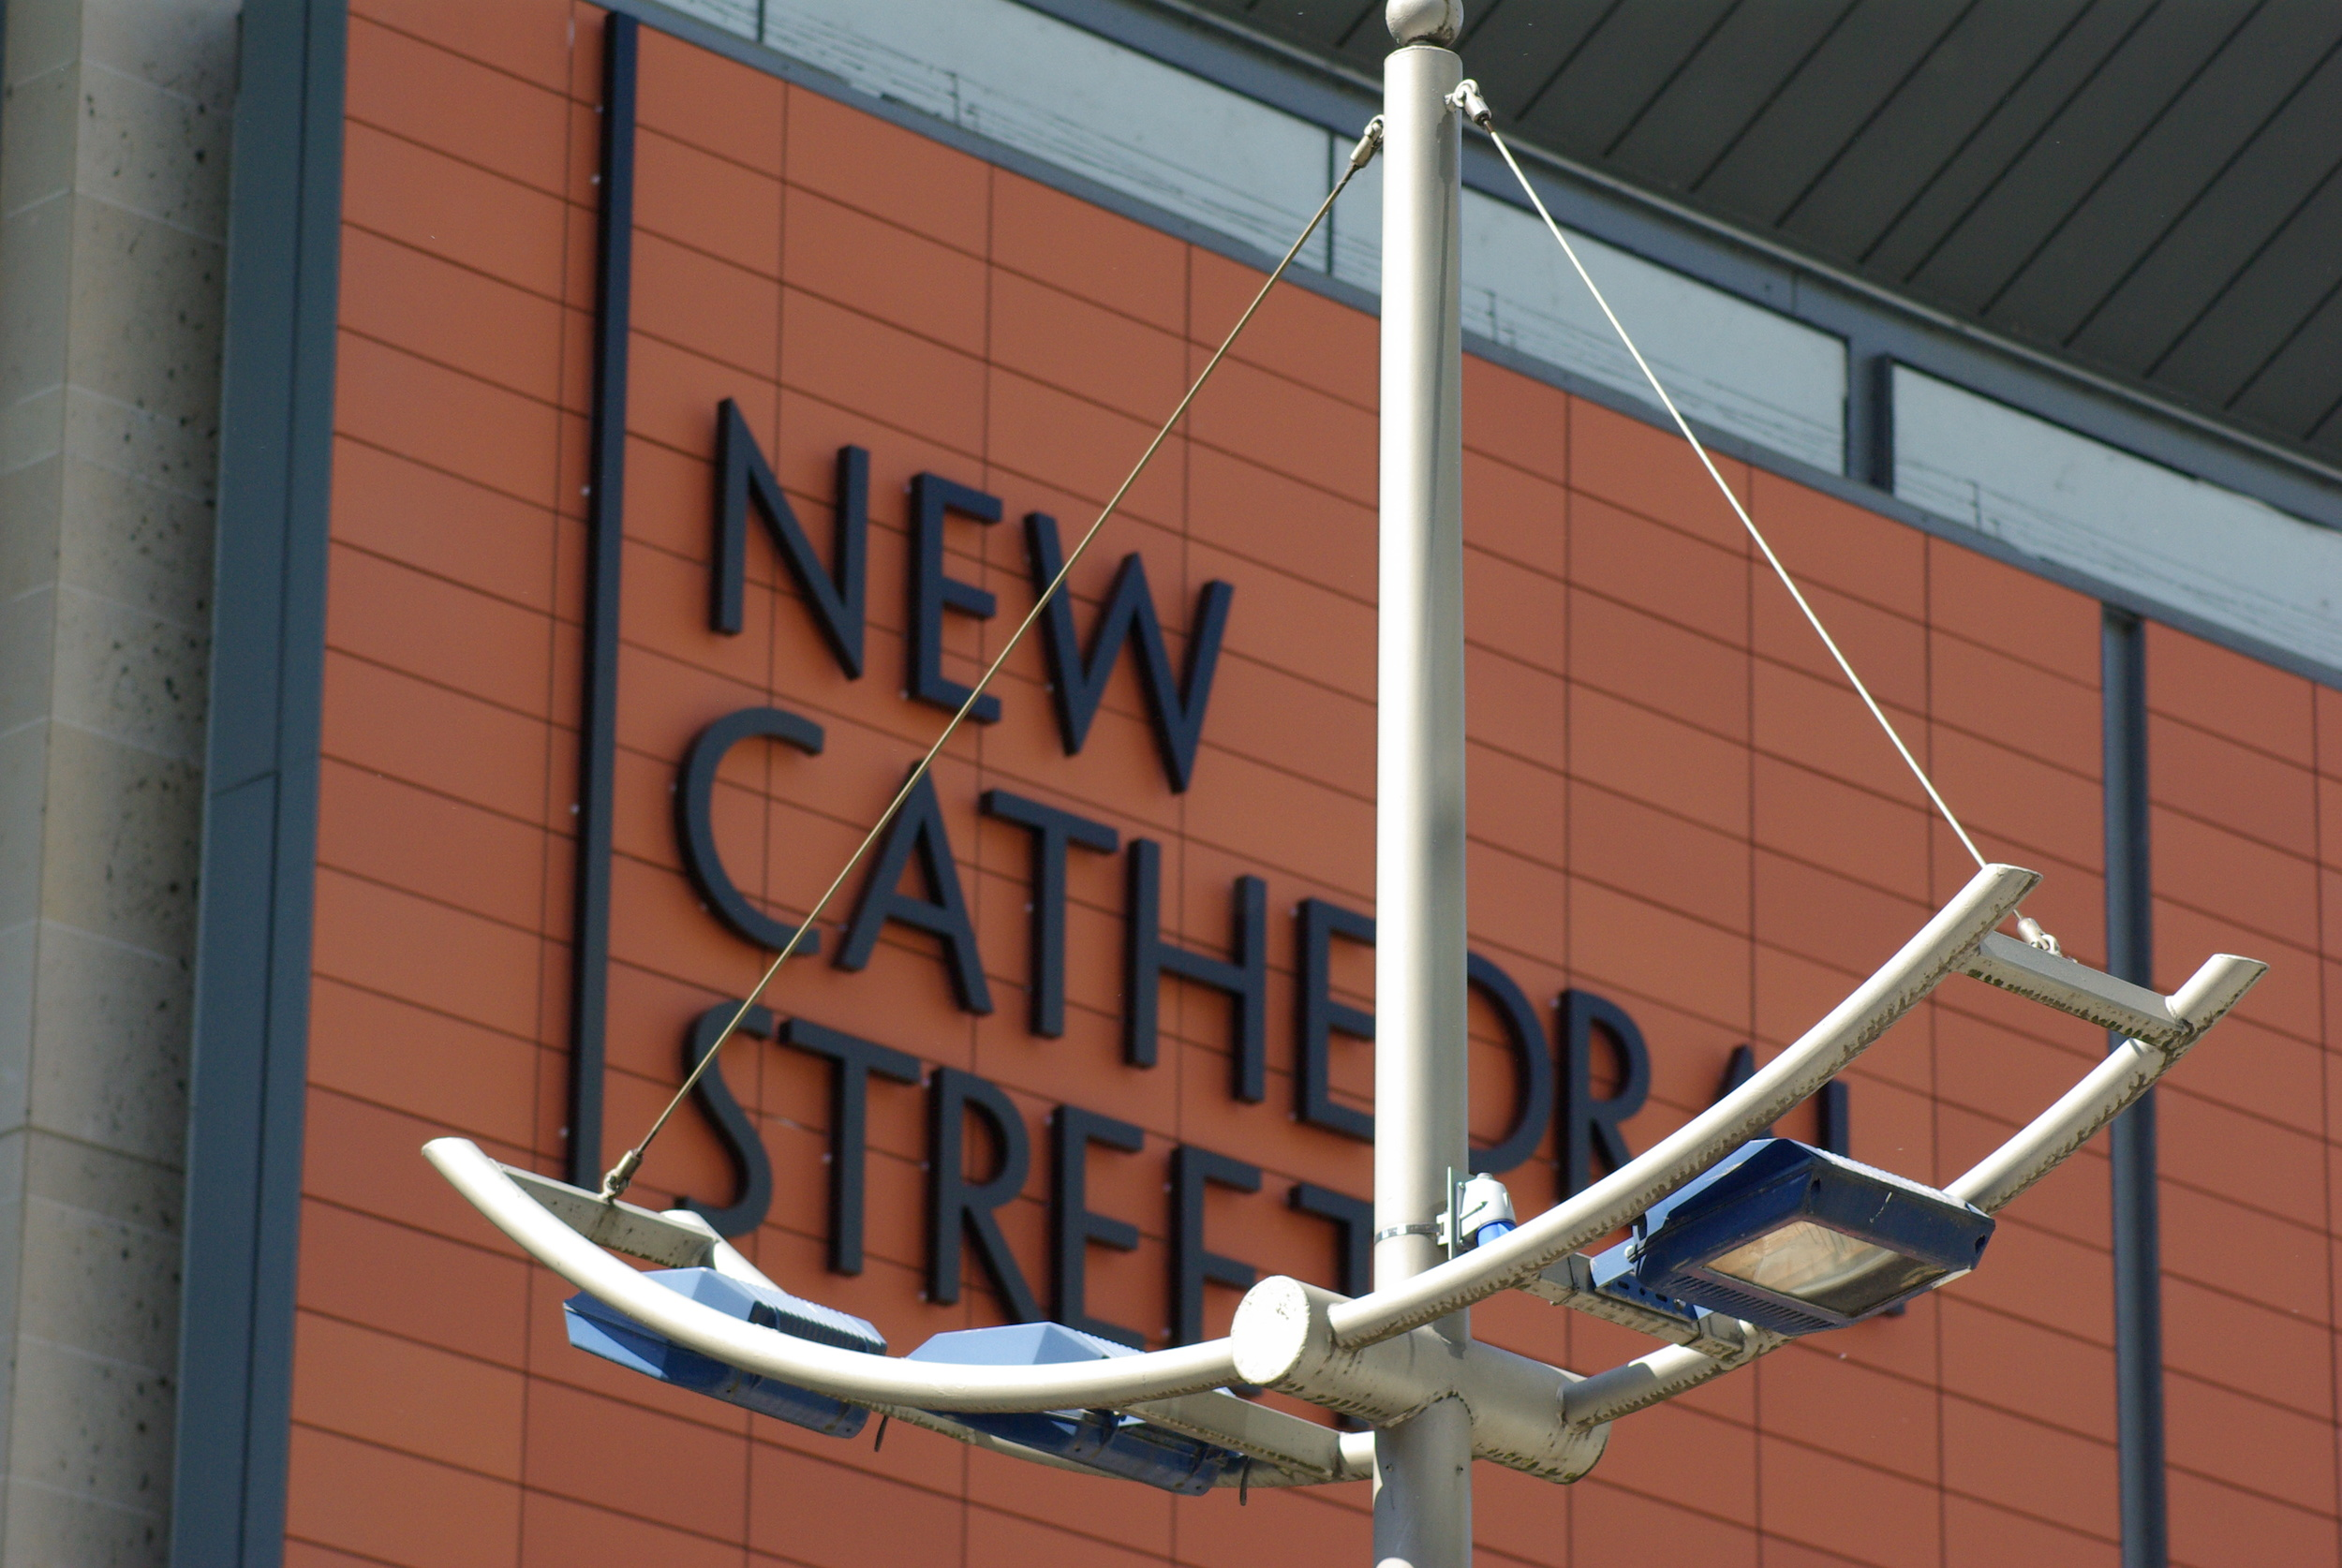 New Cathedral Street Sign